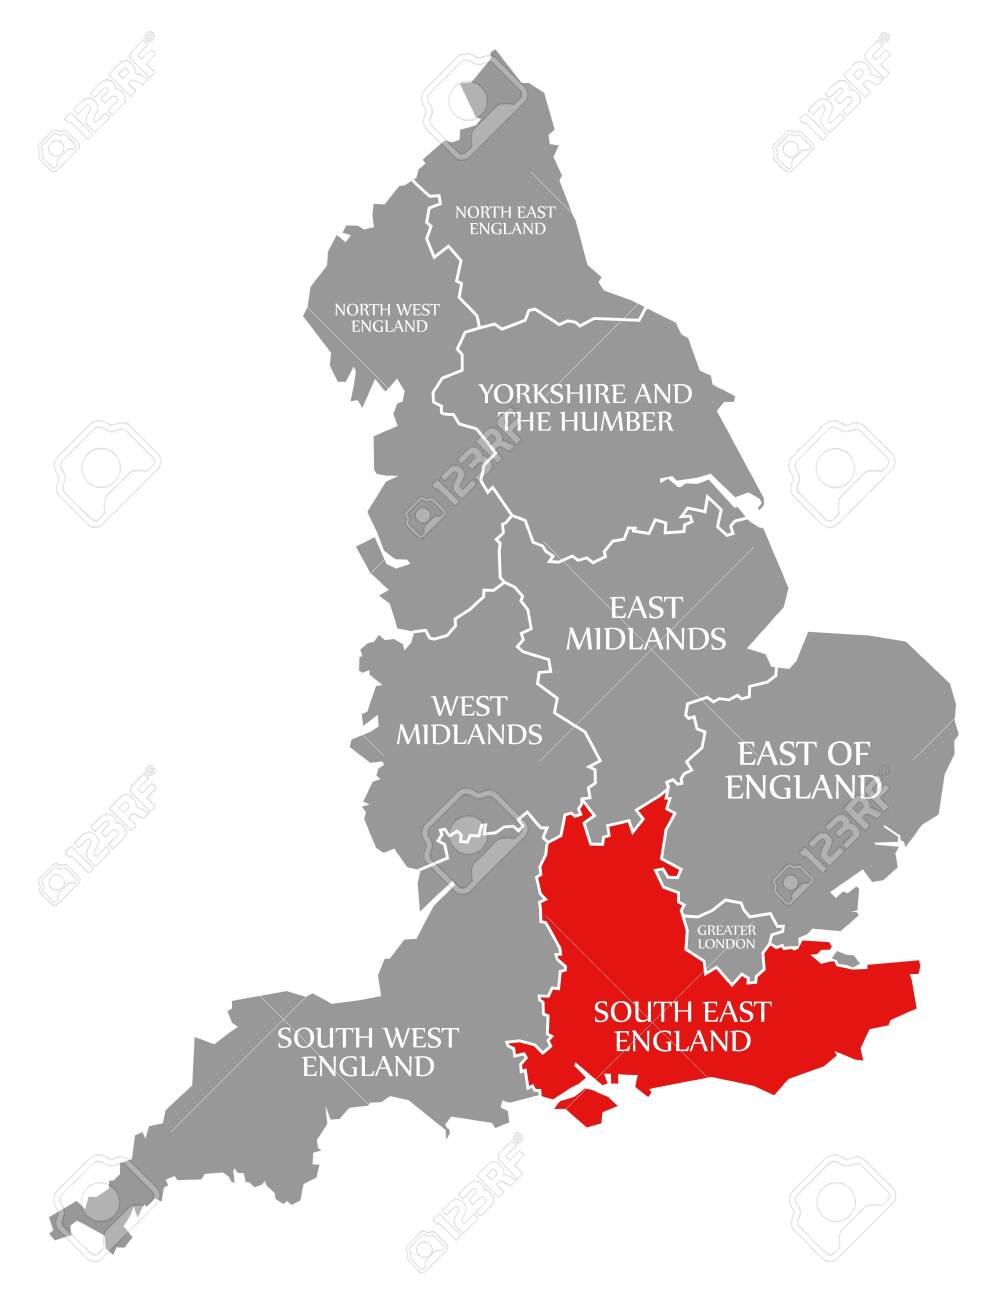 London Map North South East West.South East England Red Highlighted In Map Of England Uk